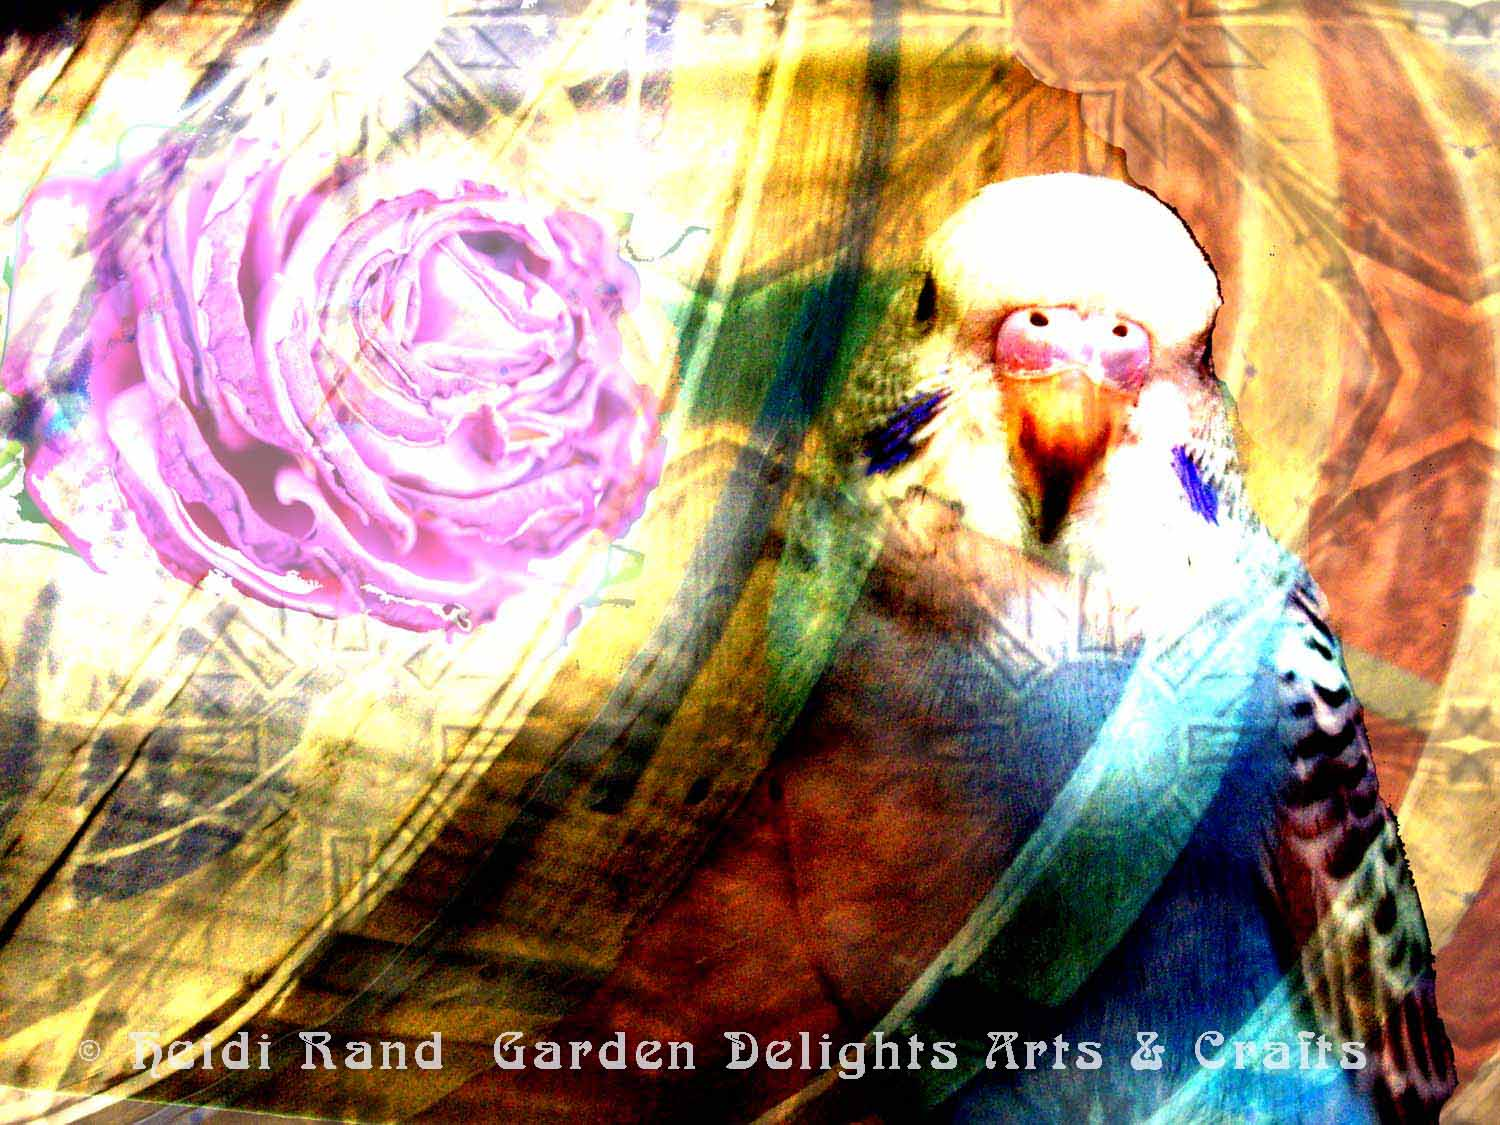 Parakeet Rose collage